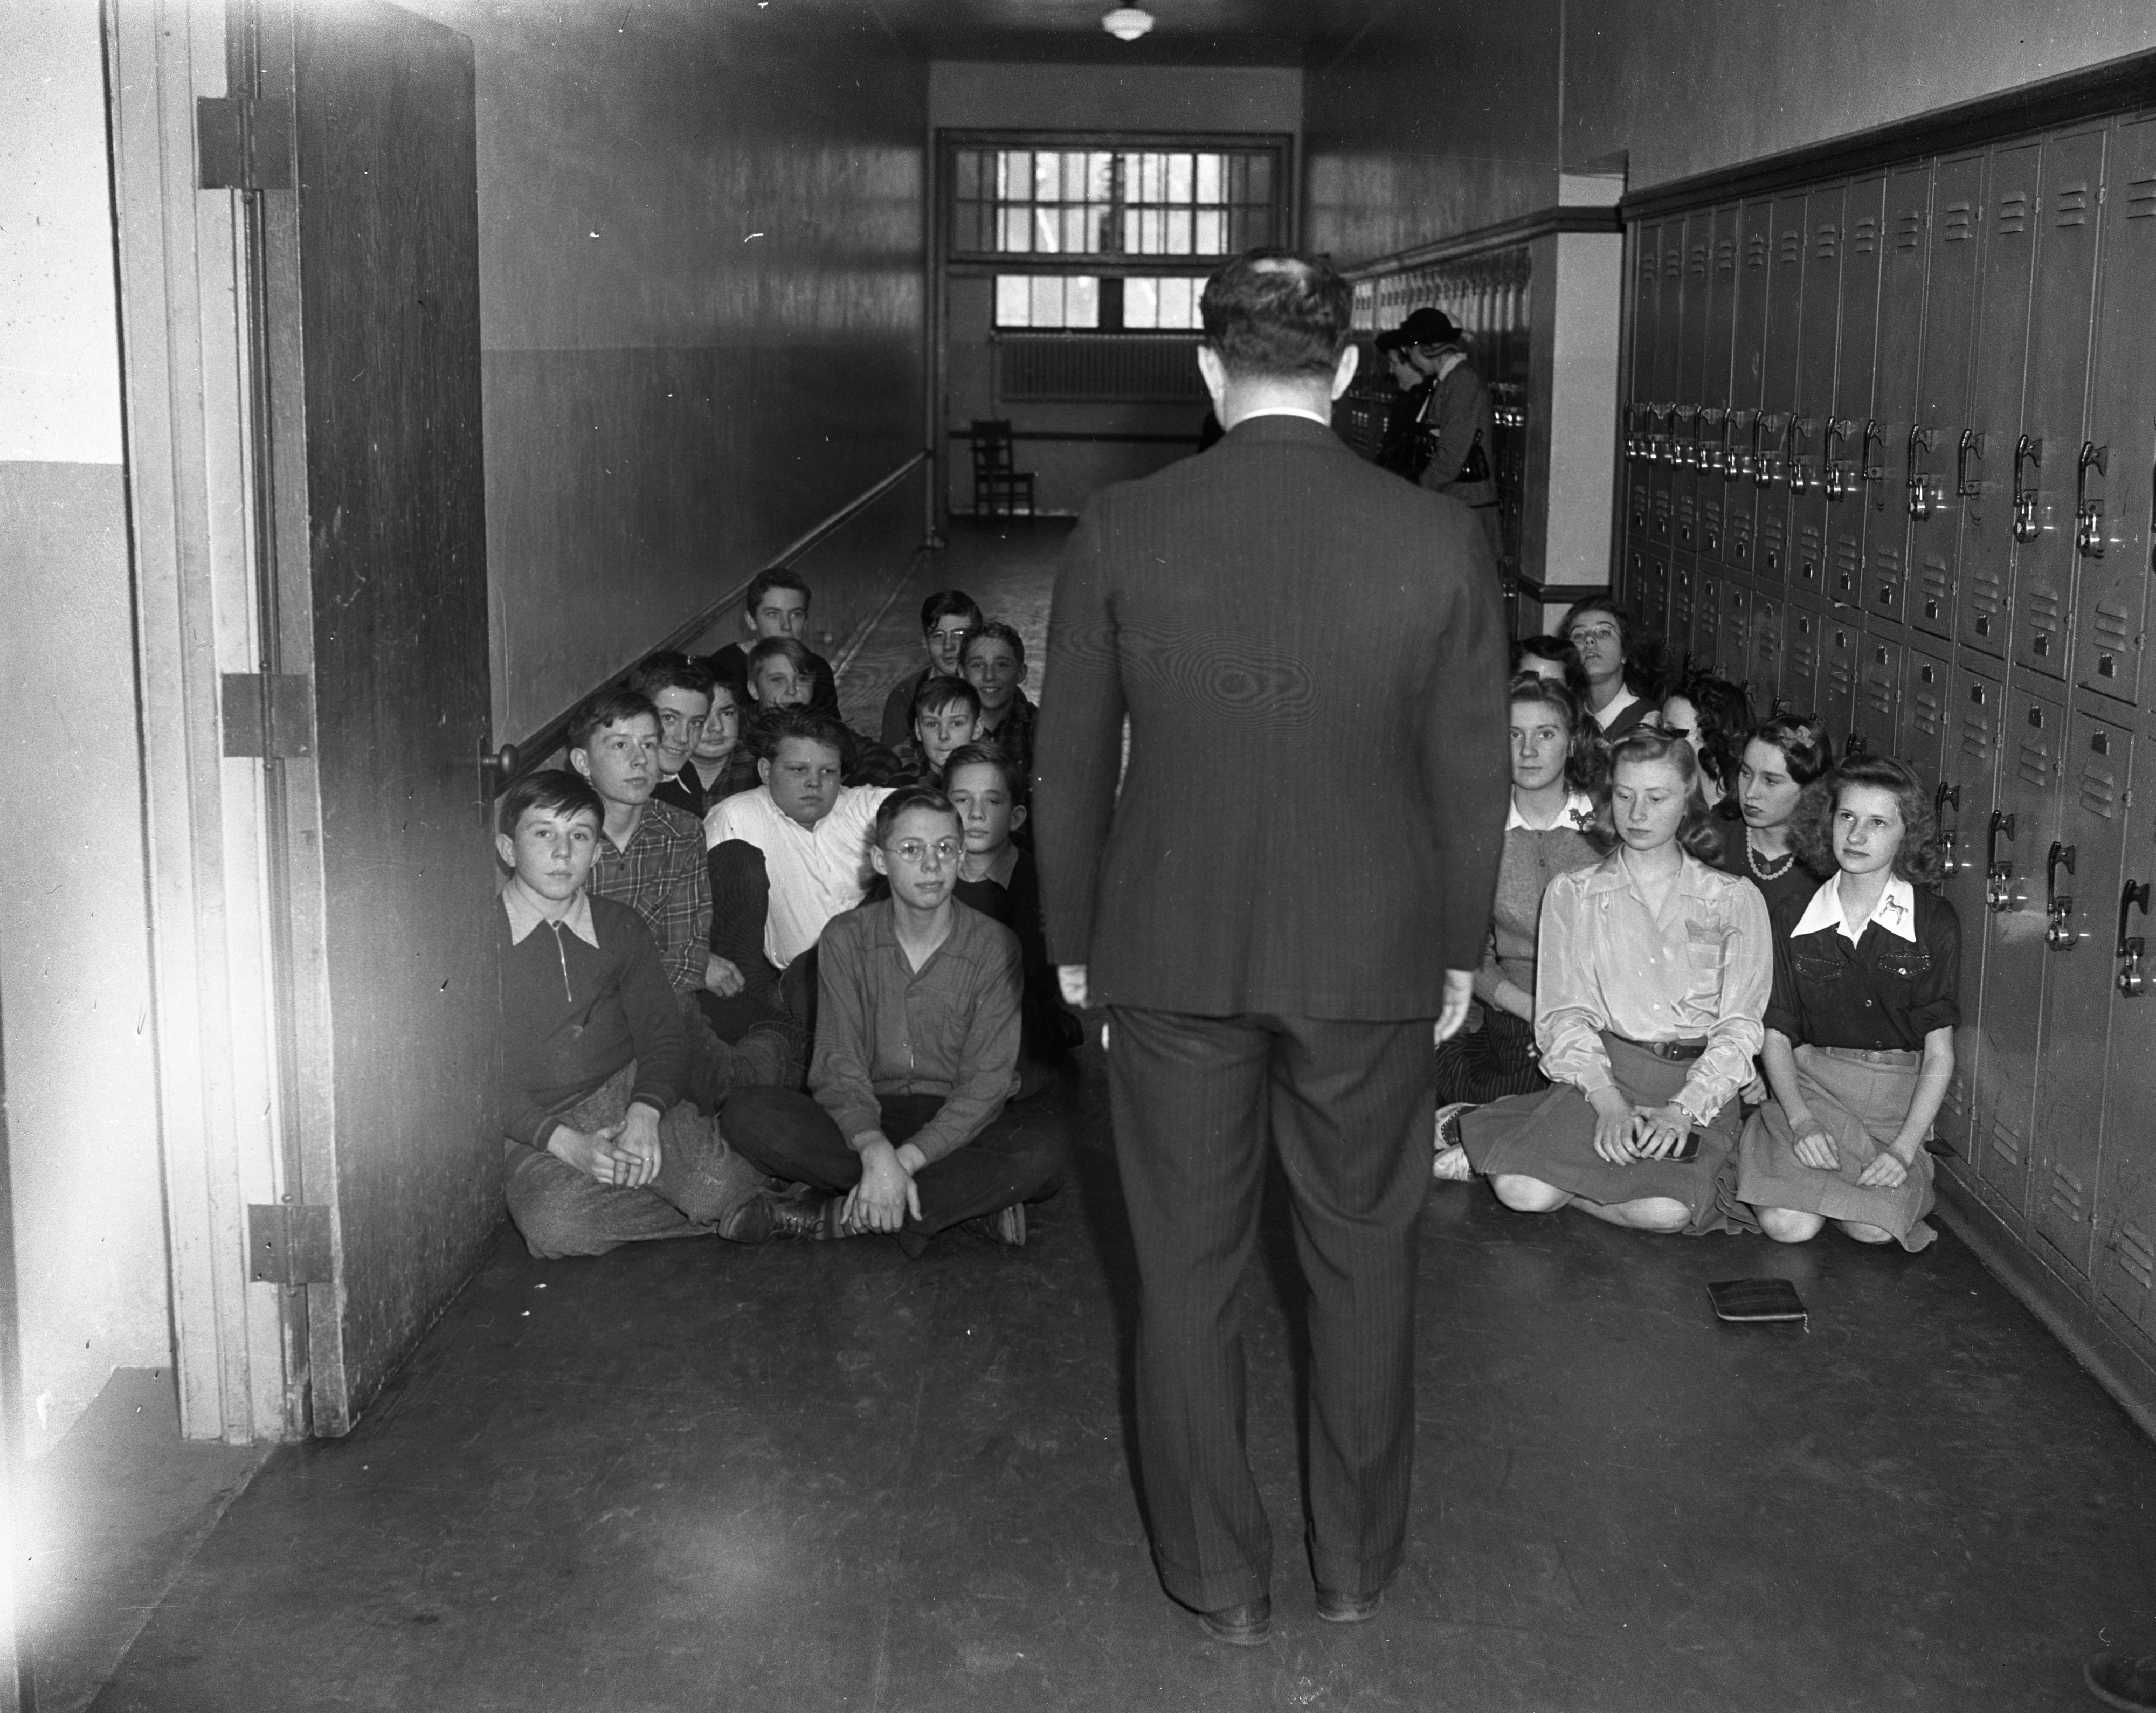 Air Raid Drill at Tappan School, February 1942 image